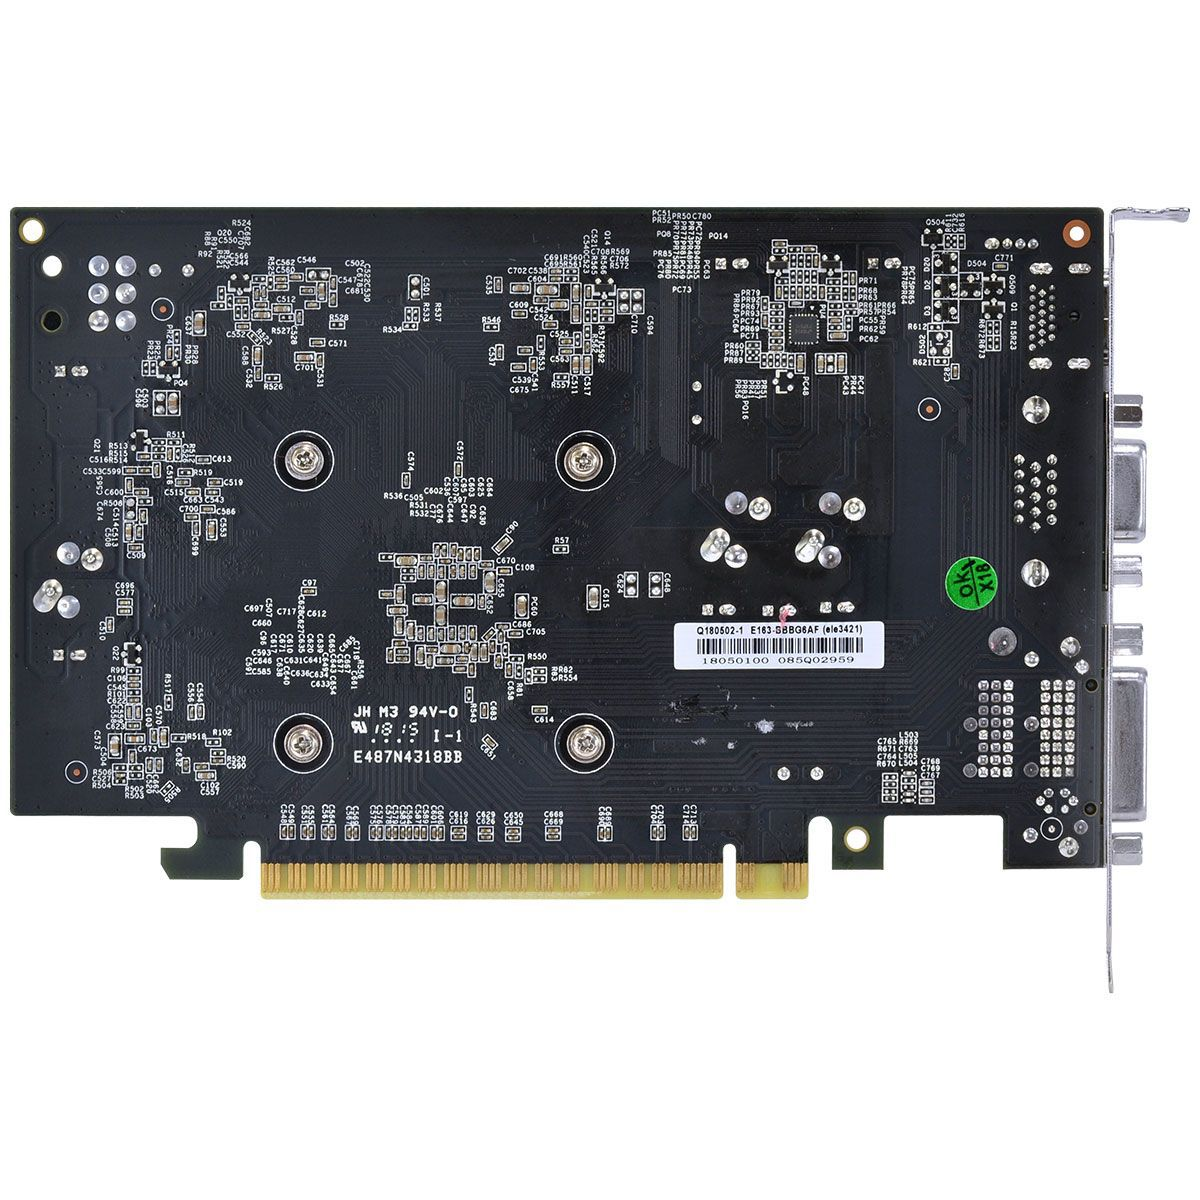 Placa de Vídeo VGA PCYes NVIDIA GeForce GT 730 Gaming, 1GB, GDDR5, 128 Bits, PCI-E 1.0 - PY730GT12801G5